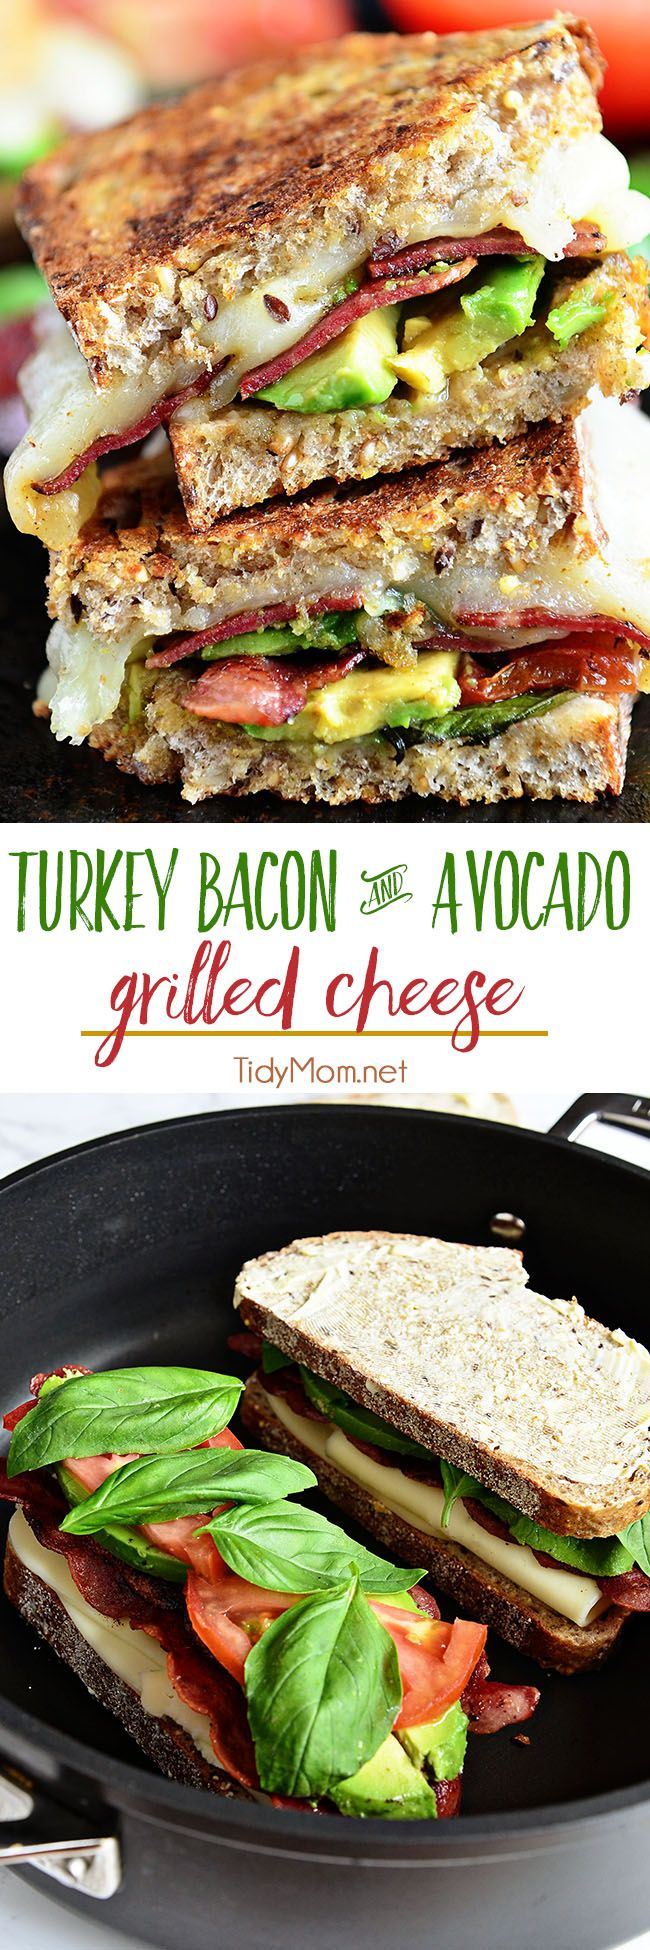 Turkey Bacon and Avocado Grilled Cheese sandwich loaded with fresh basil…